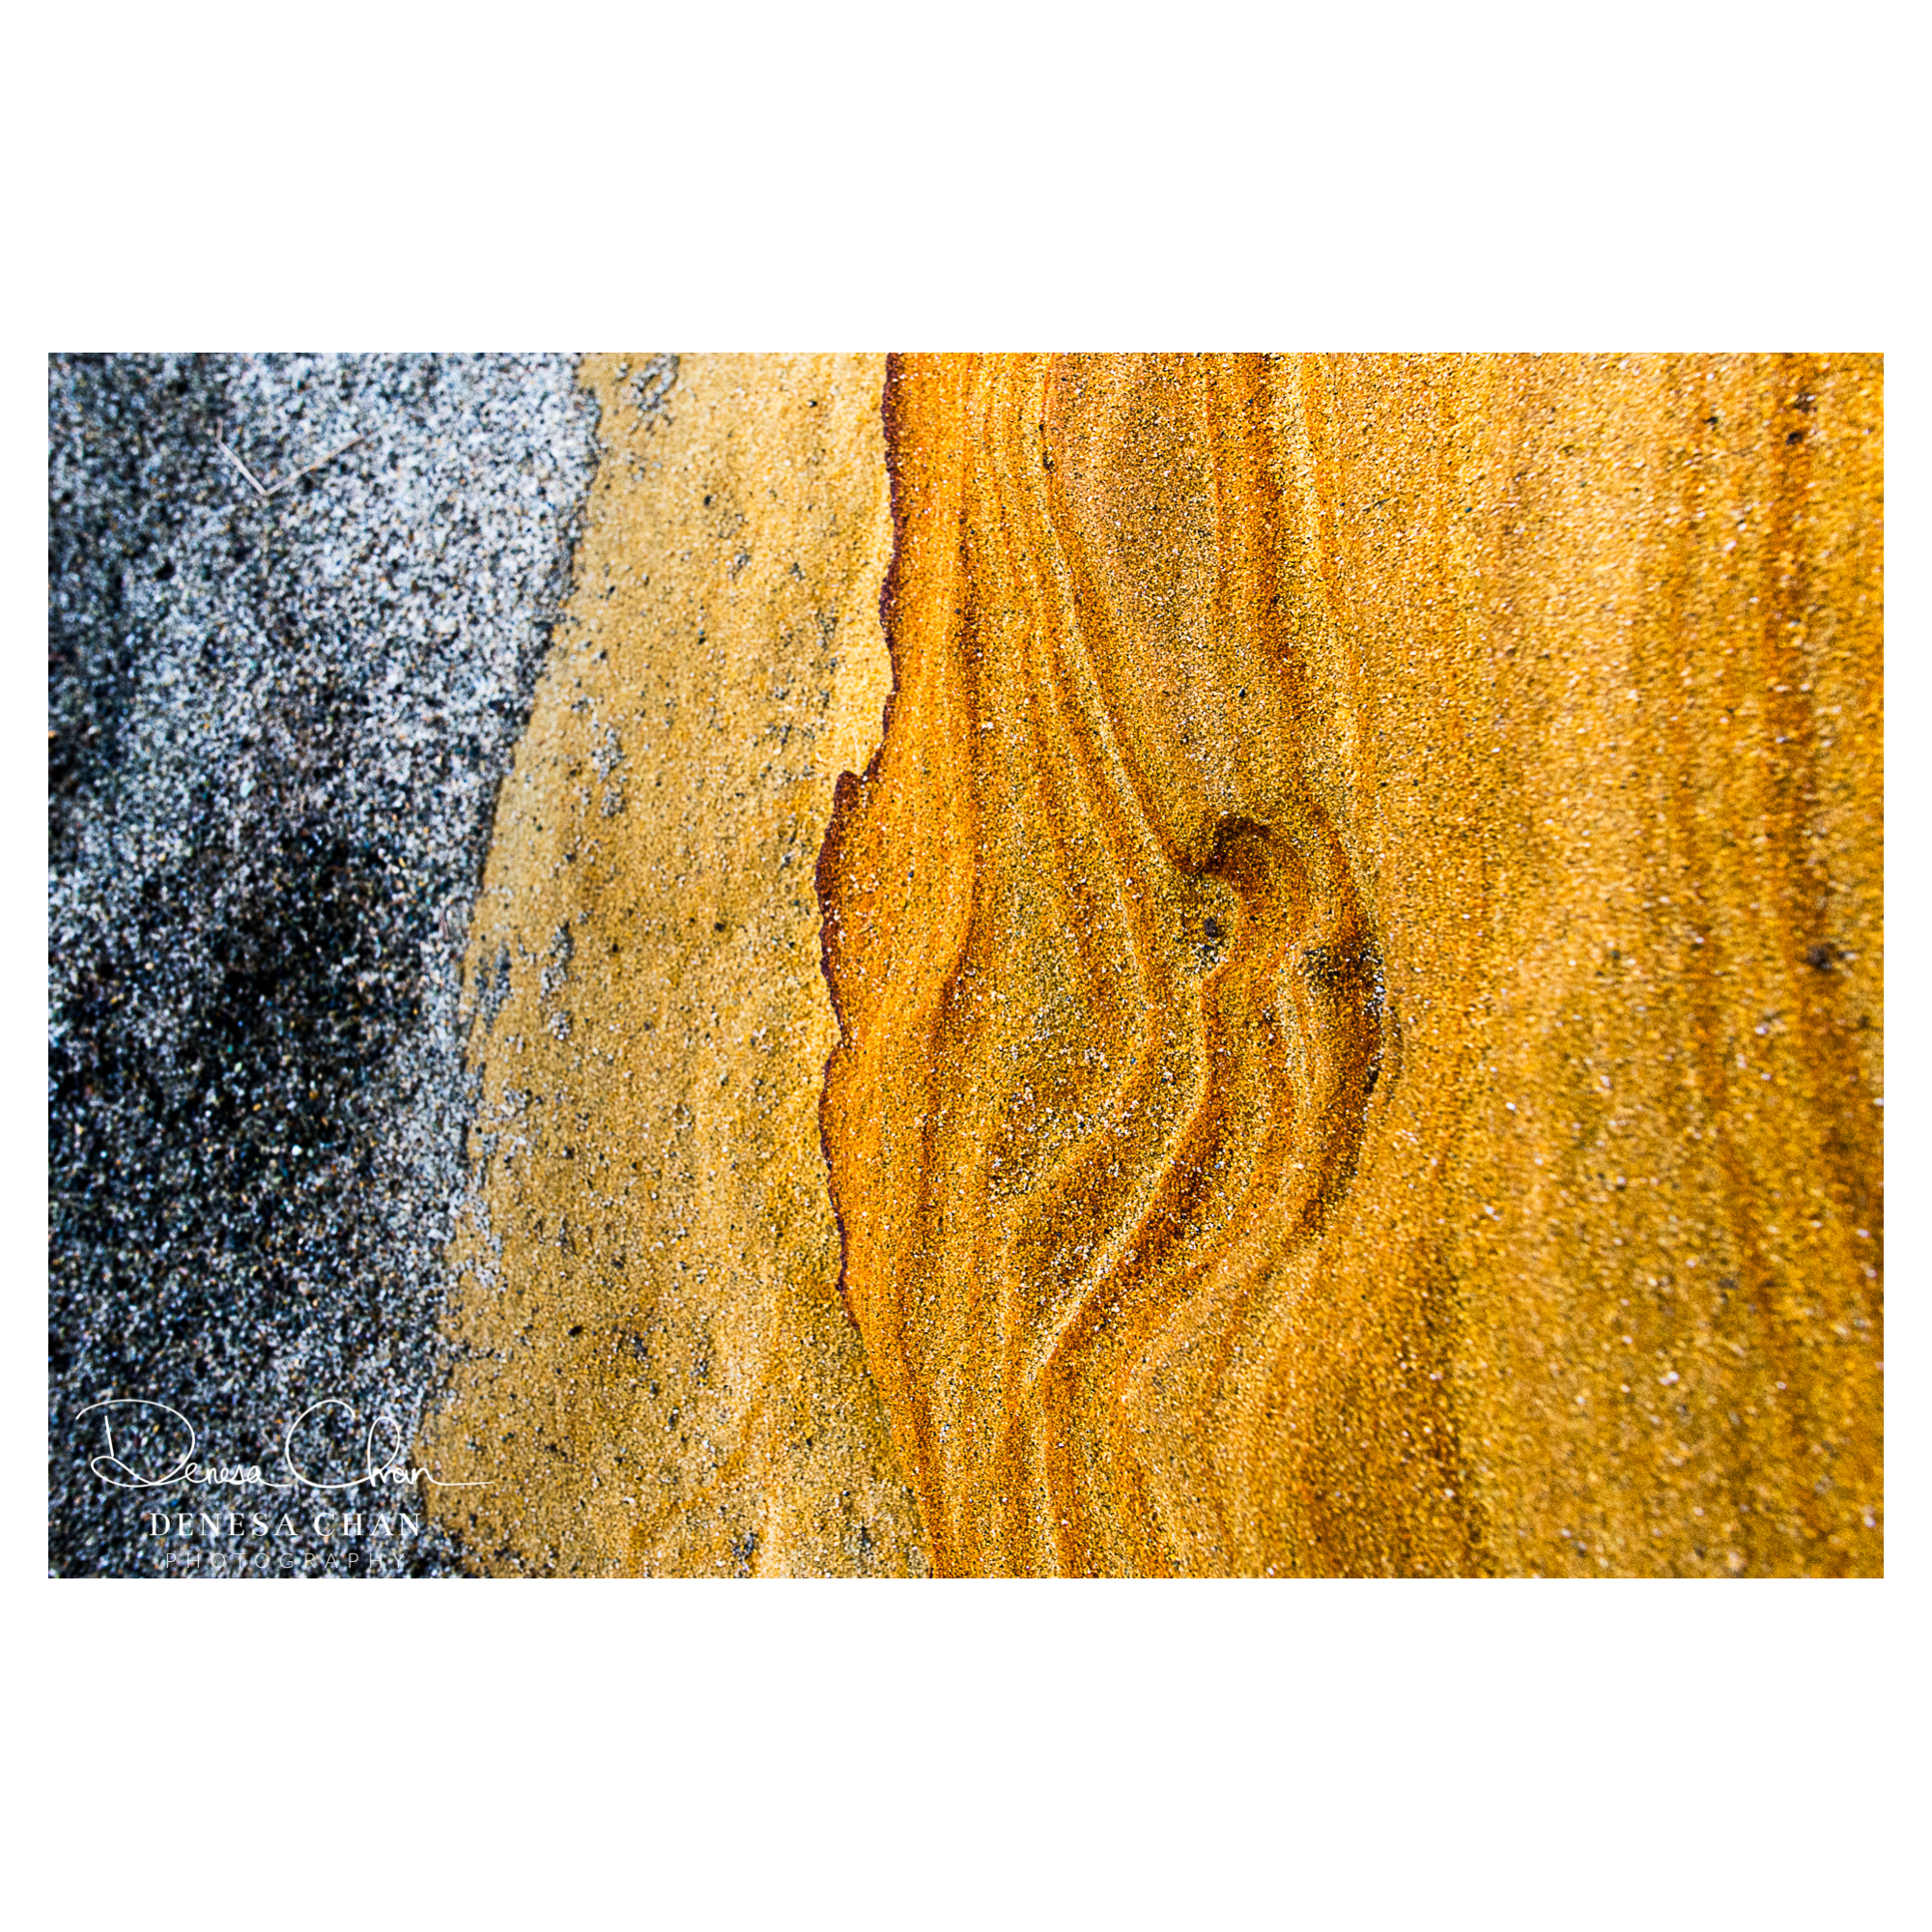 Gemstone_Beach_Orange_Sandstone_Lines_South_Island_©_Denesa_Chan_Photography_7705